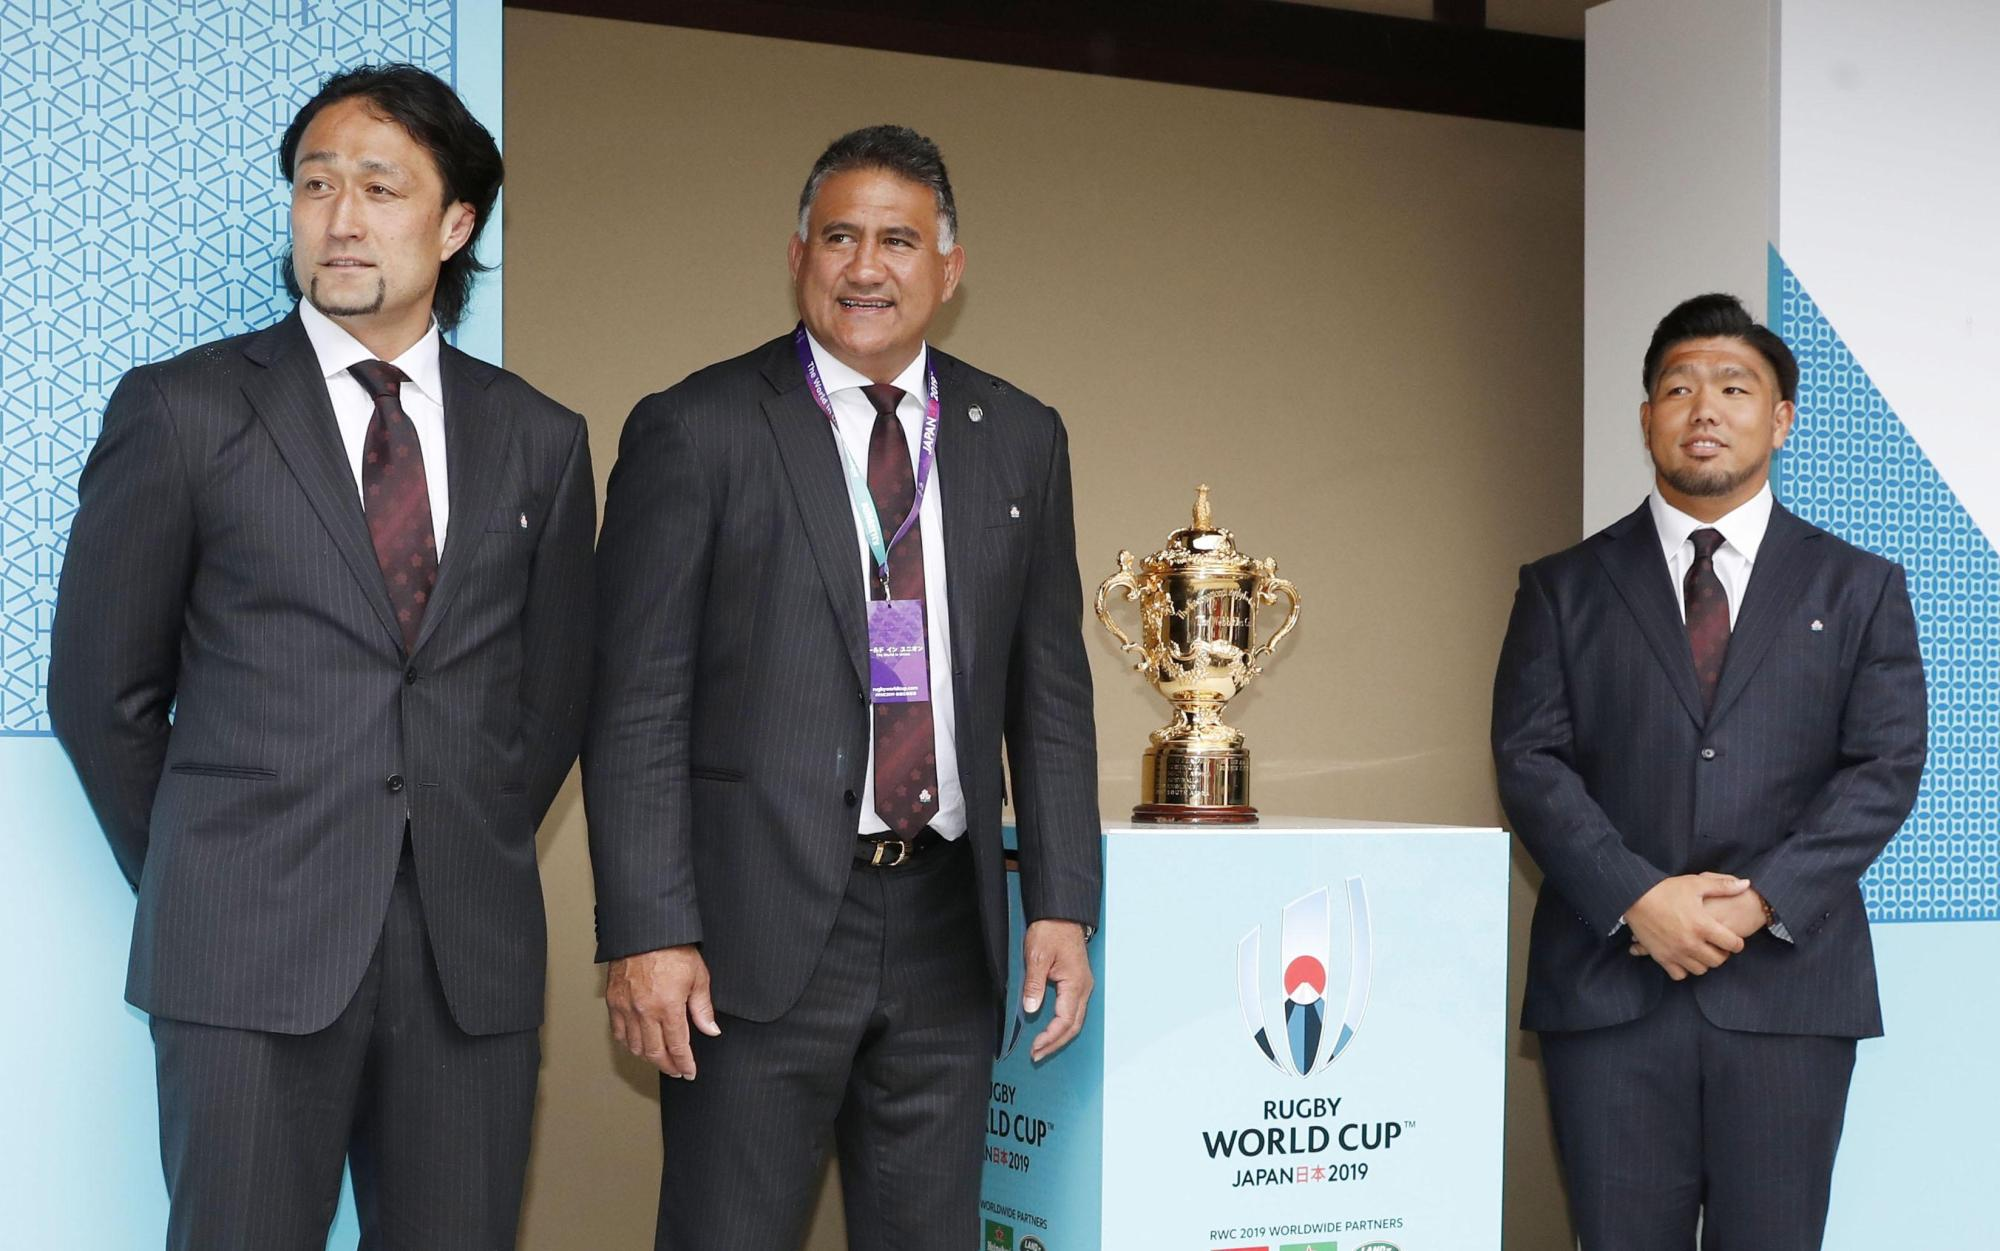 Brave Blossoms head coach Jamie Joseph (center) and players Hitoshi Ono (left) and Shota Horie pose with the Webb Ellis Cup during the Rugby World Cup draw on Wednesday in Kyoto. | KYODO